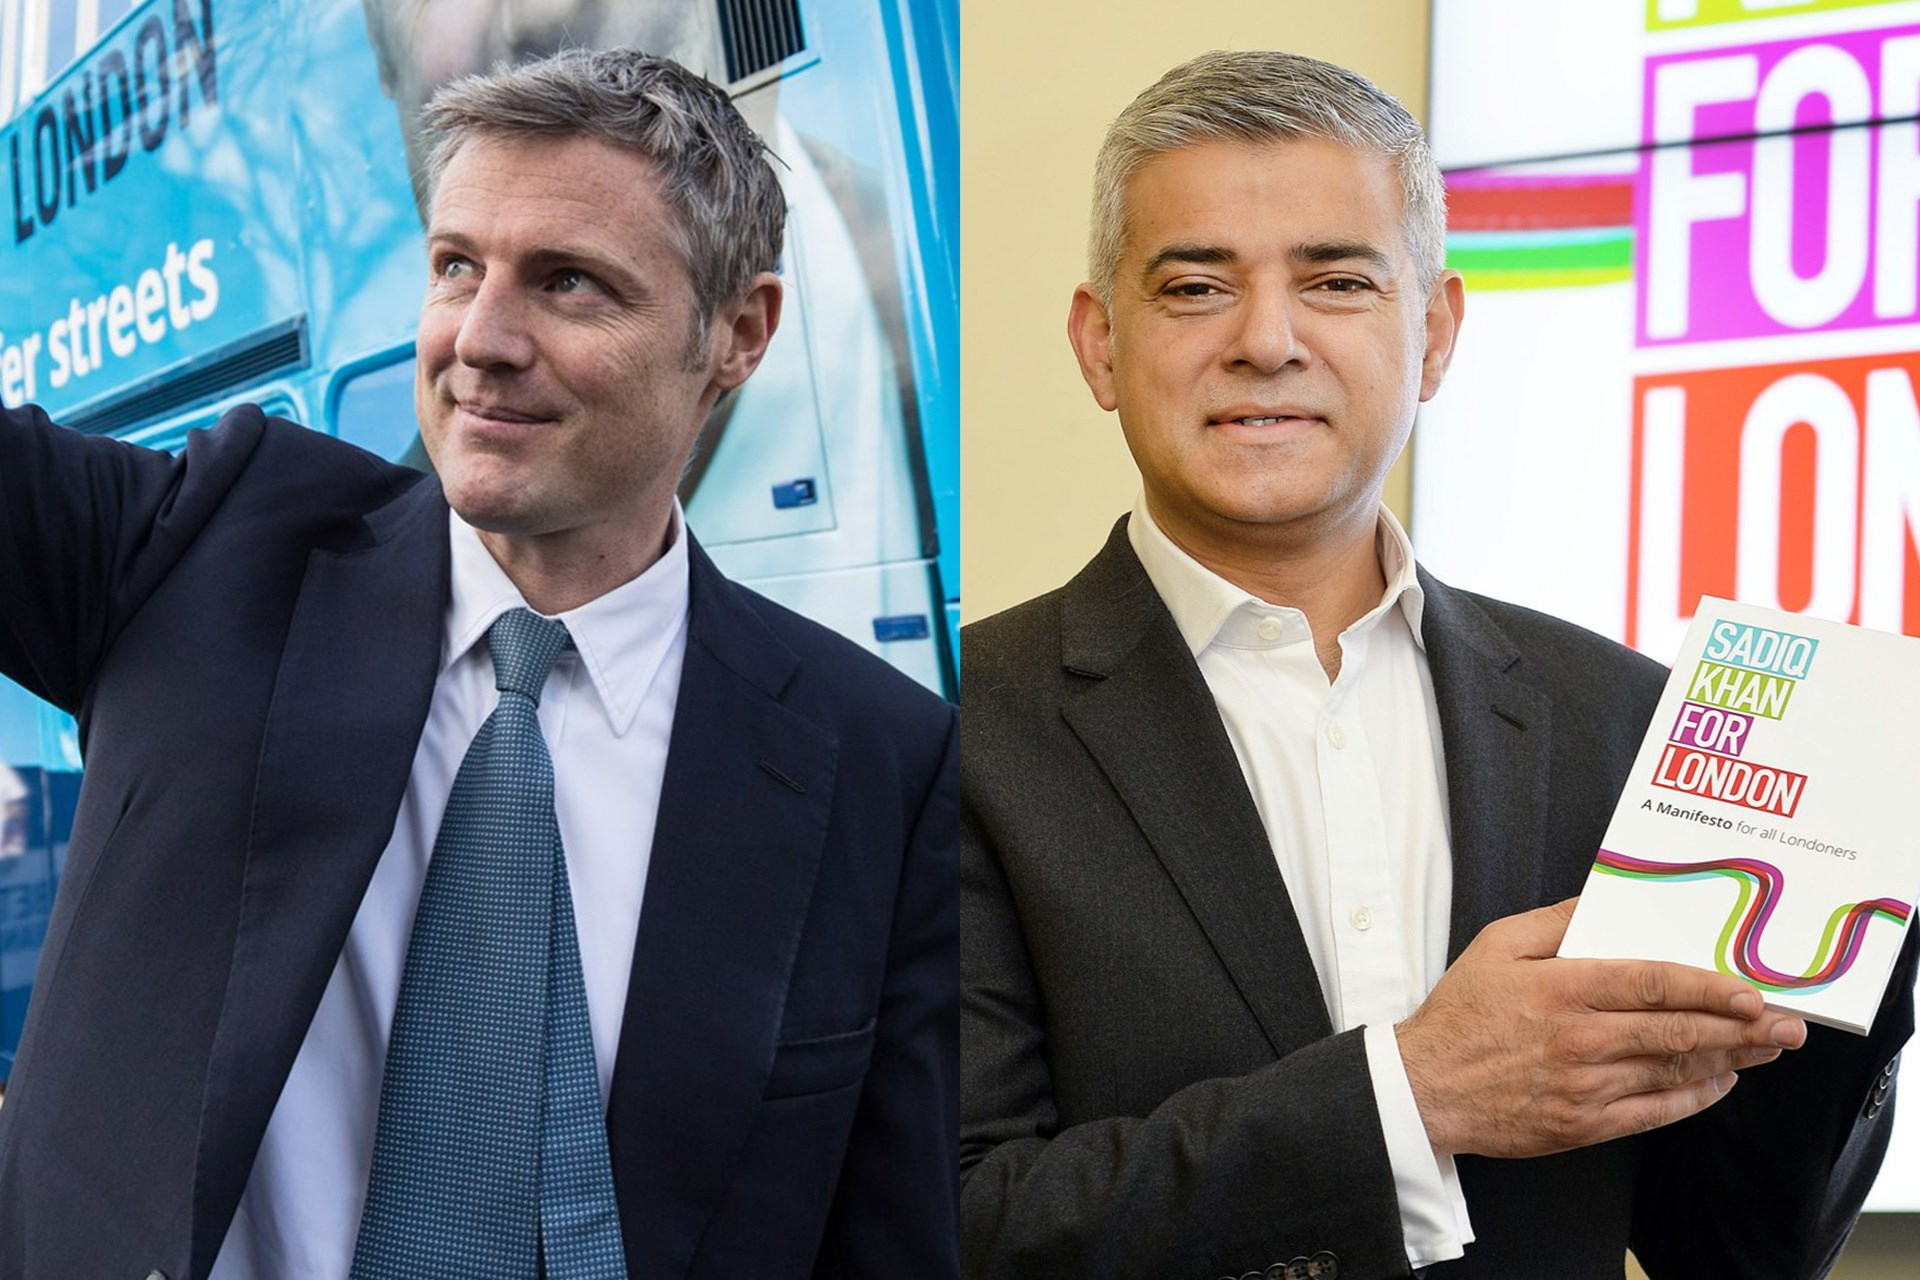 Zac Goldsmith and Sadiq Khan, candidates for Mayor of London